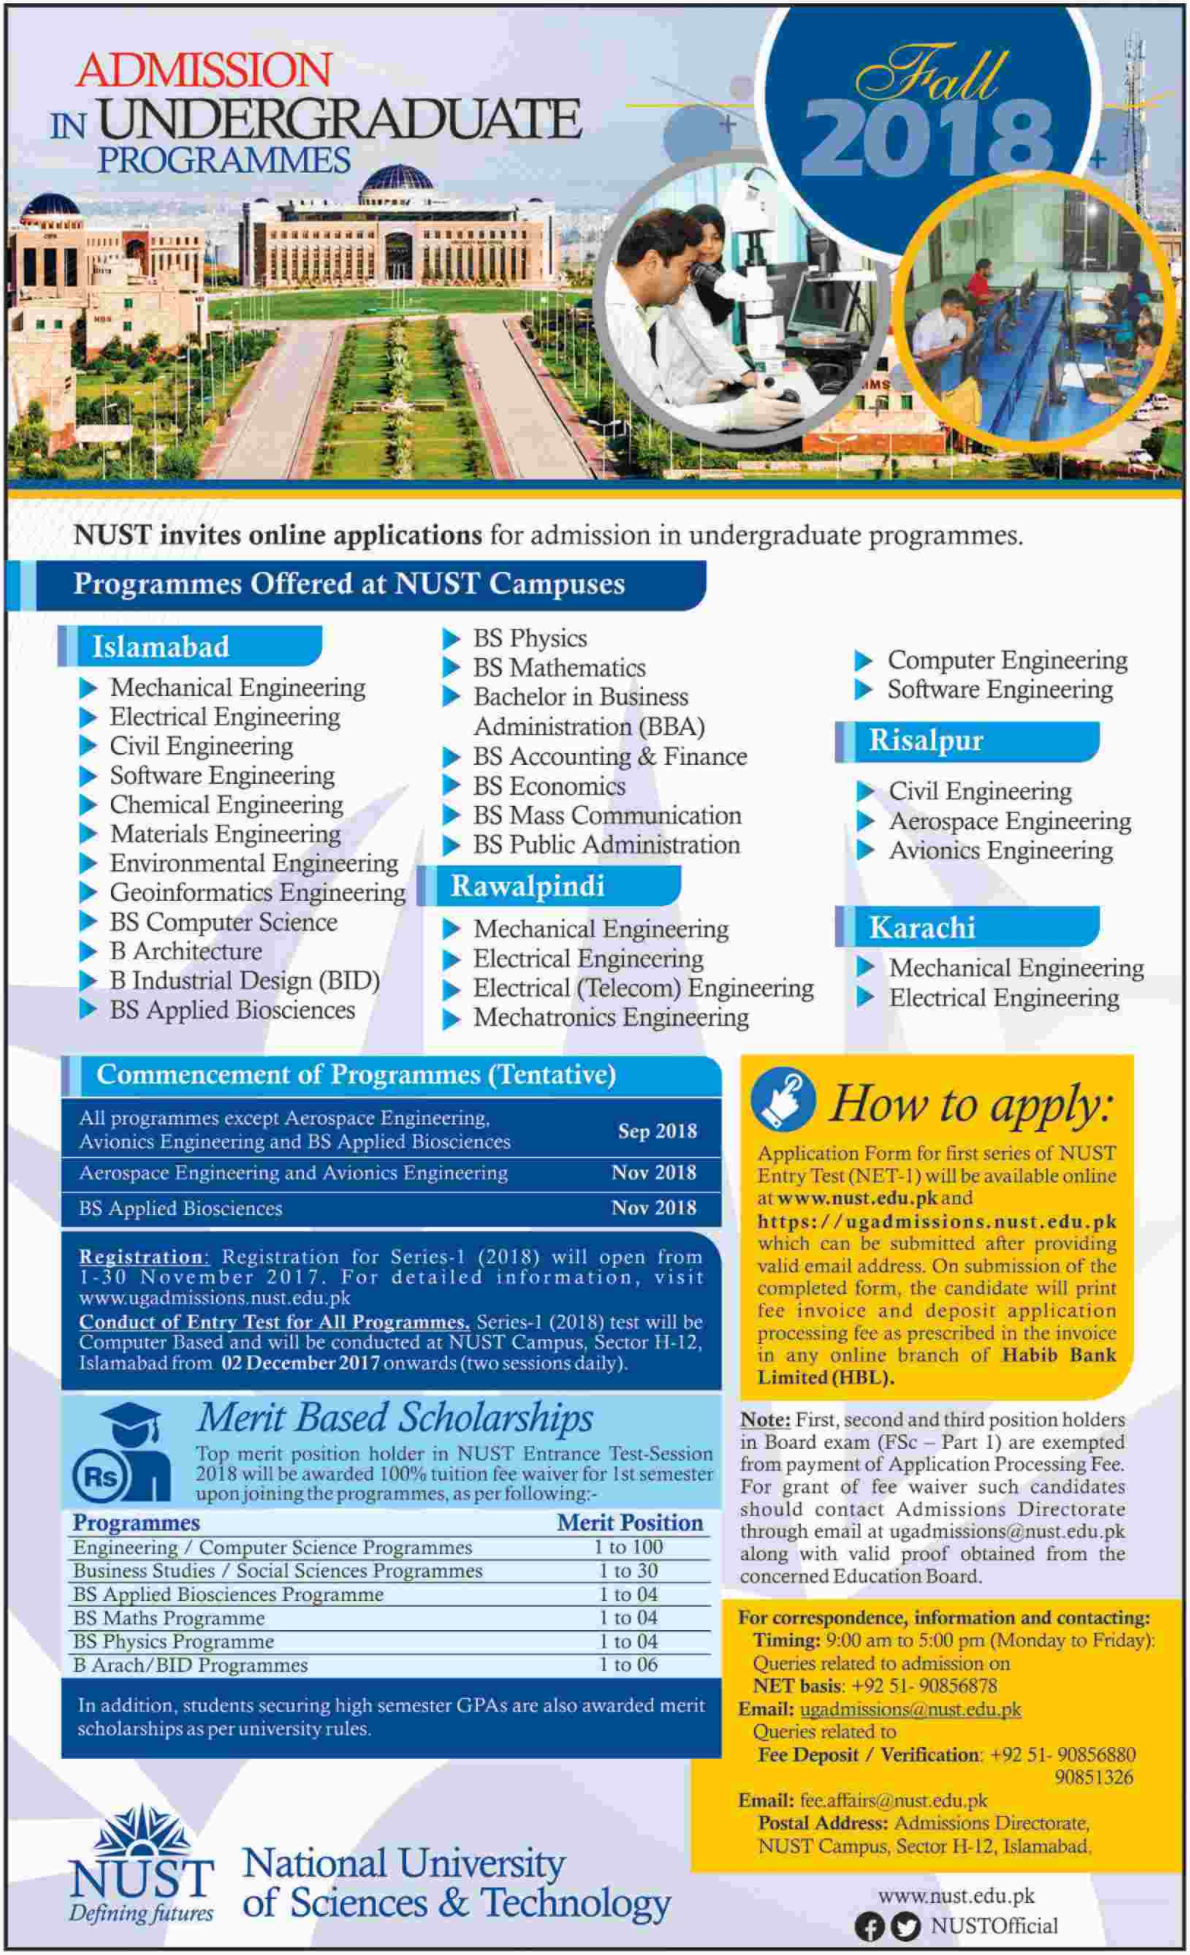 National University of Sciences and Technology (NUST) Admissions 2018 – FALL